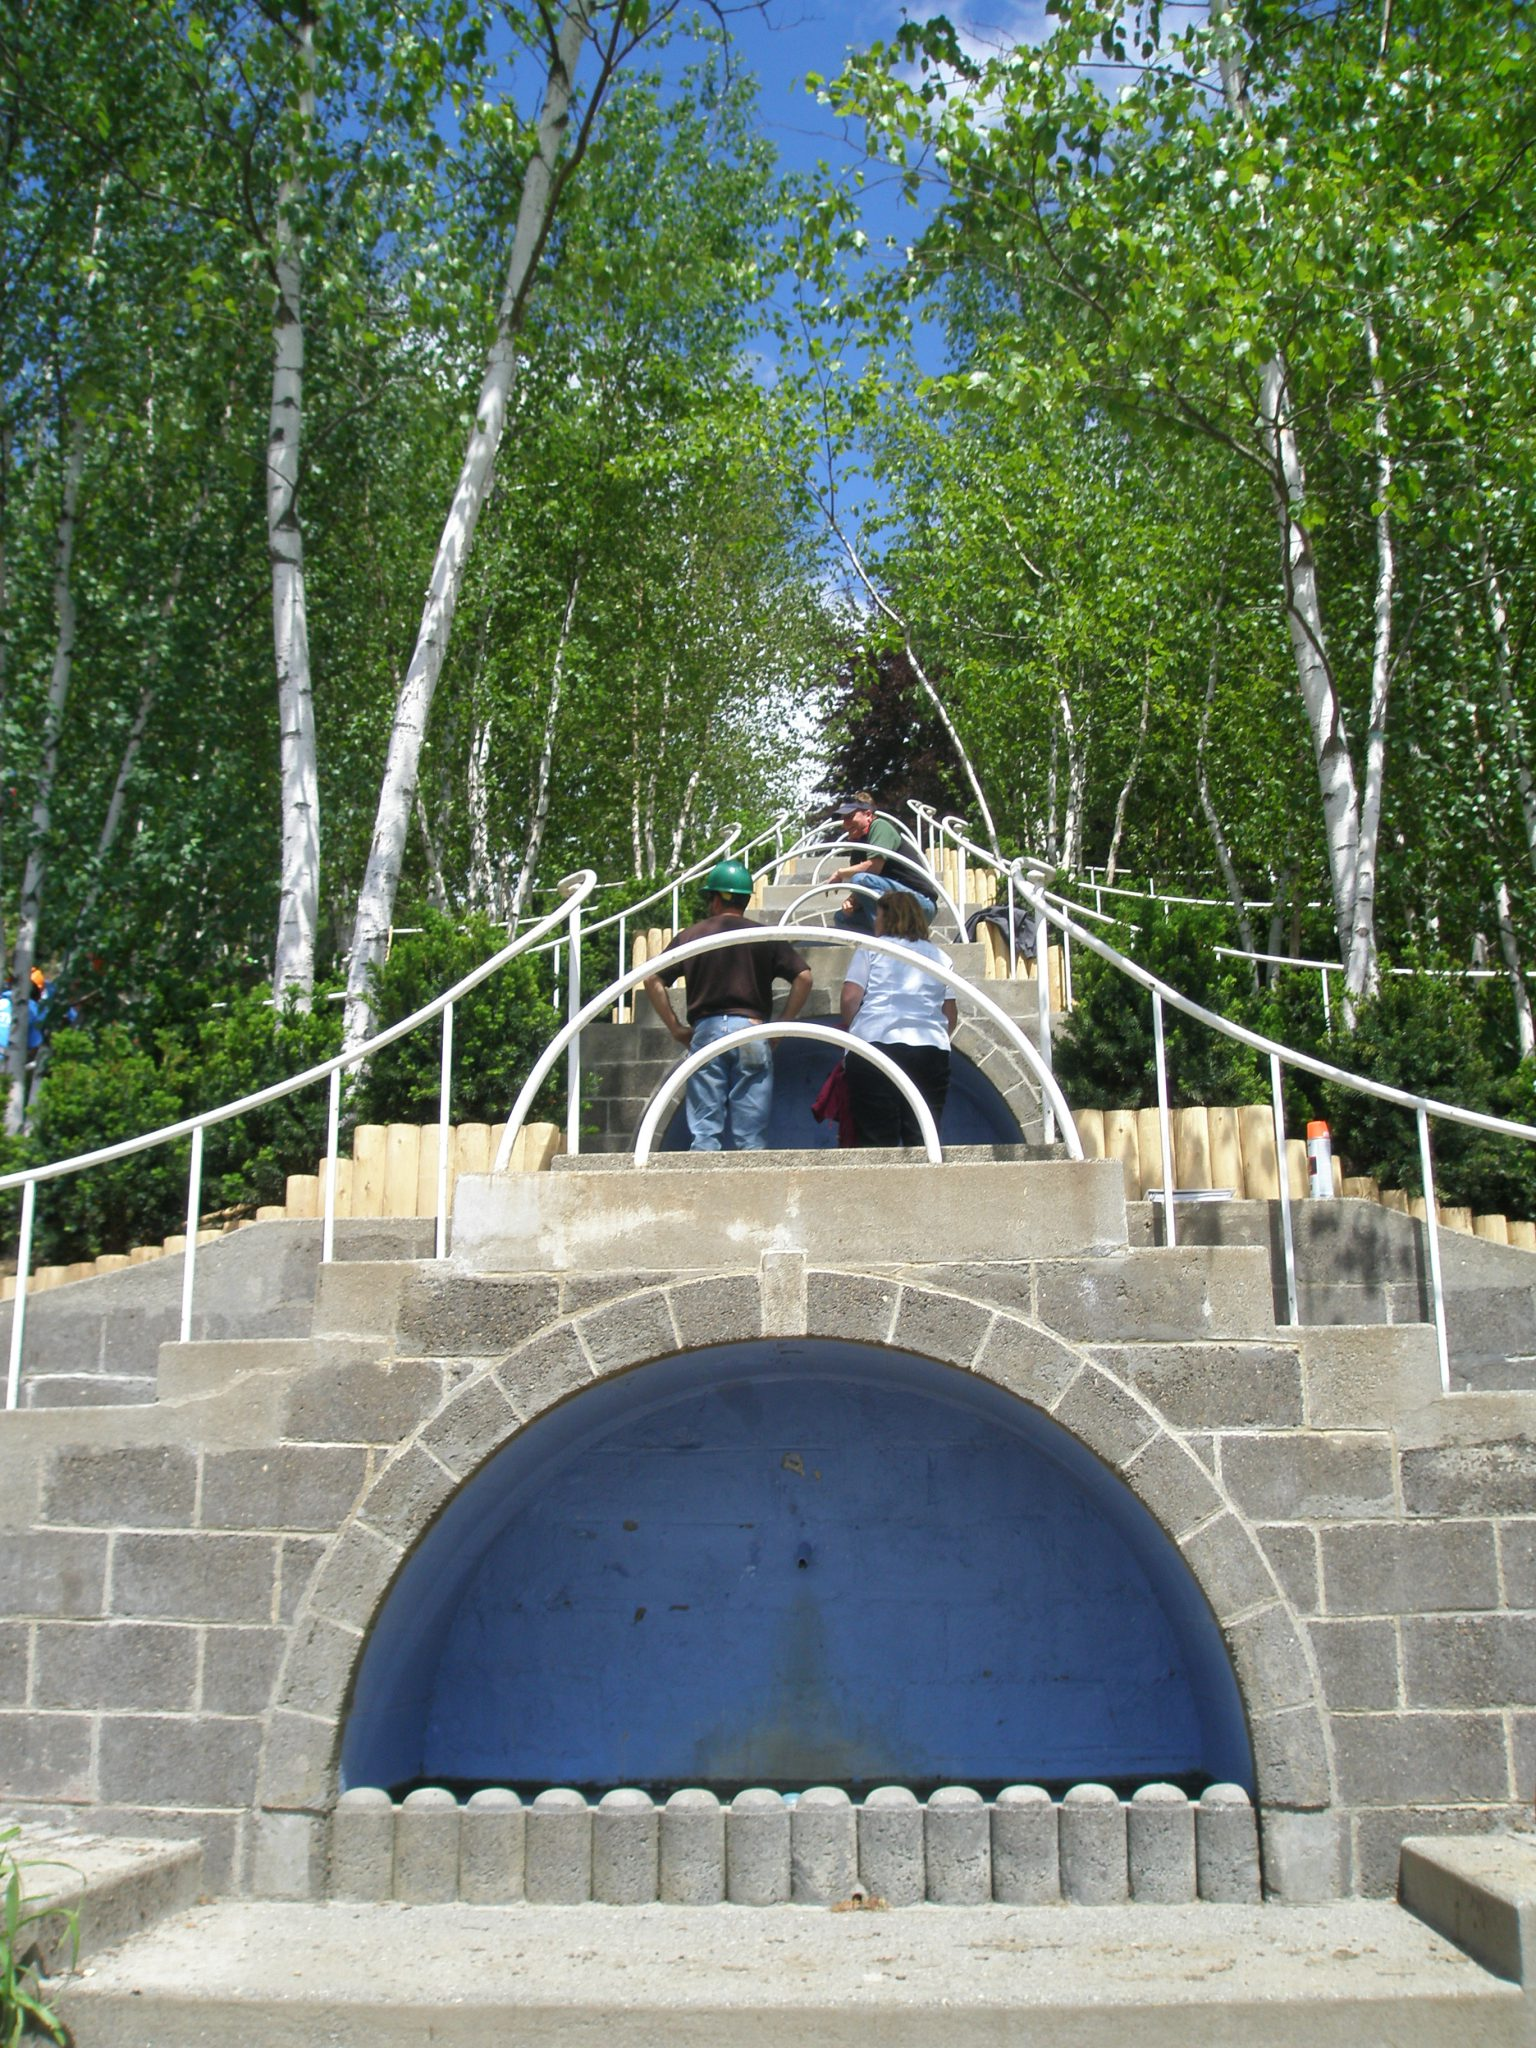 Naumkeag's Blue Steps, being restored. Stockbridge, Massachusetts. June 4, 2013.